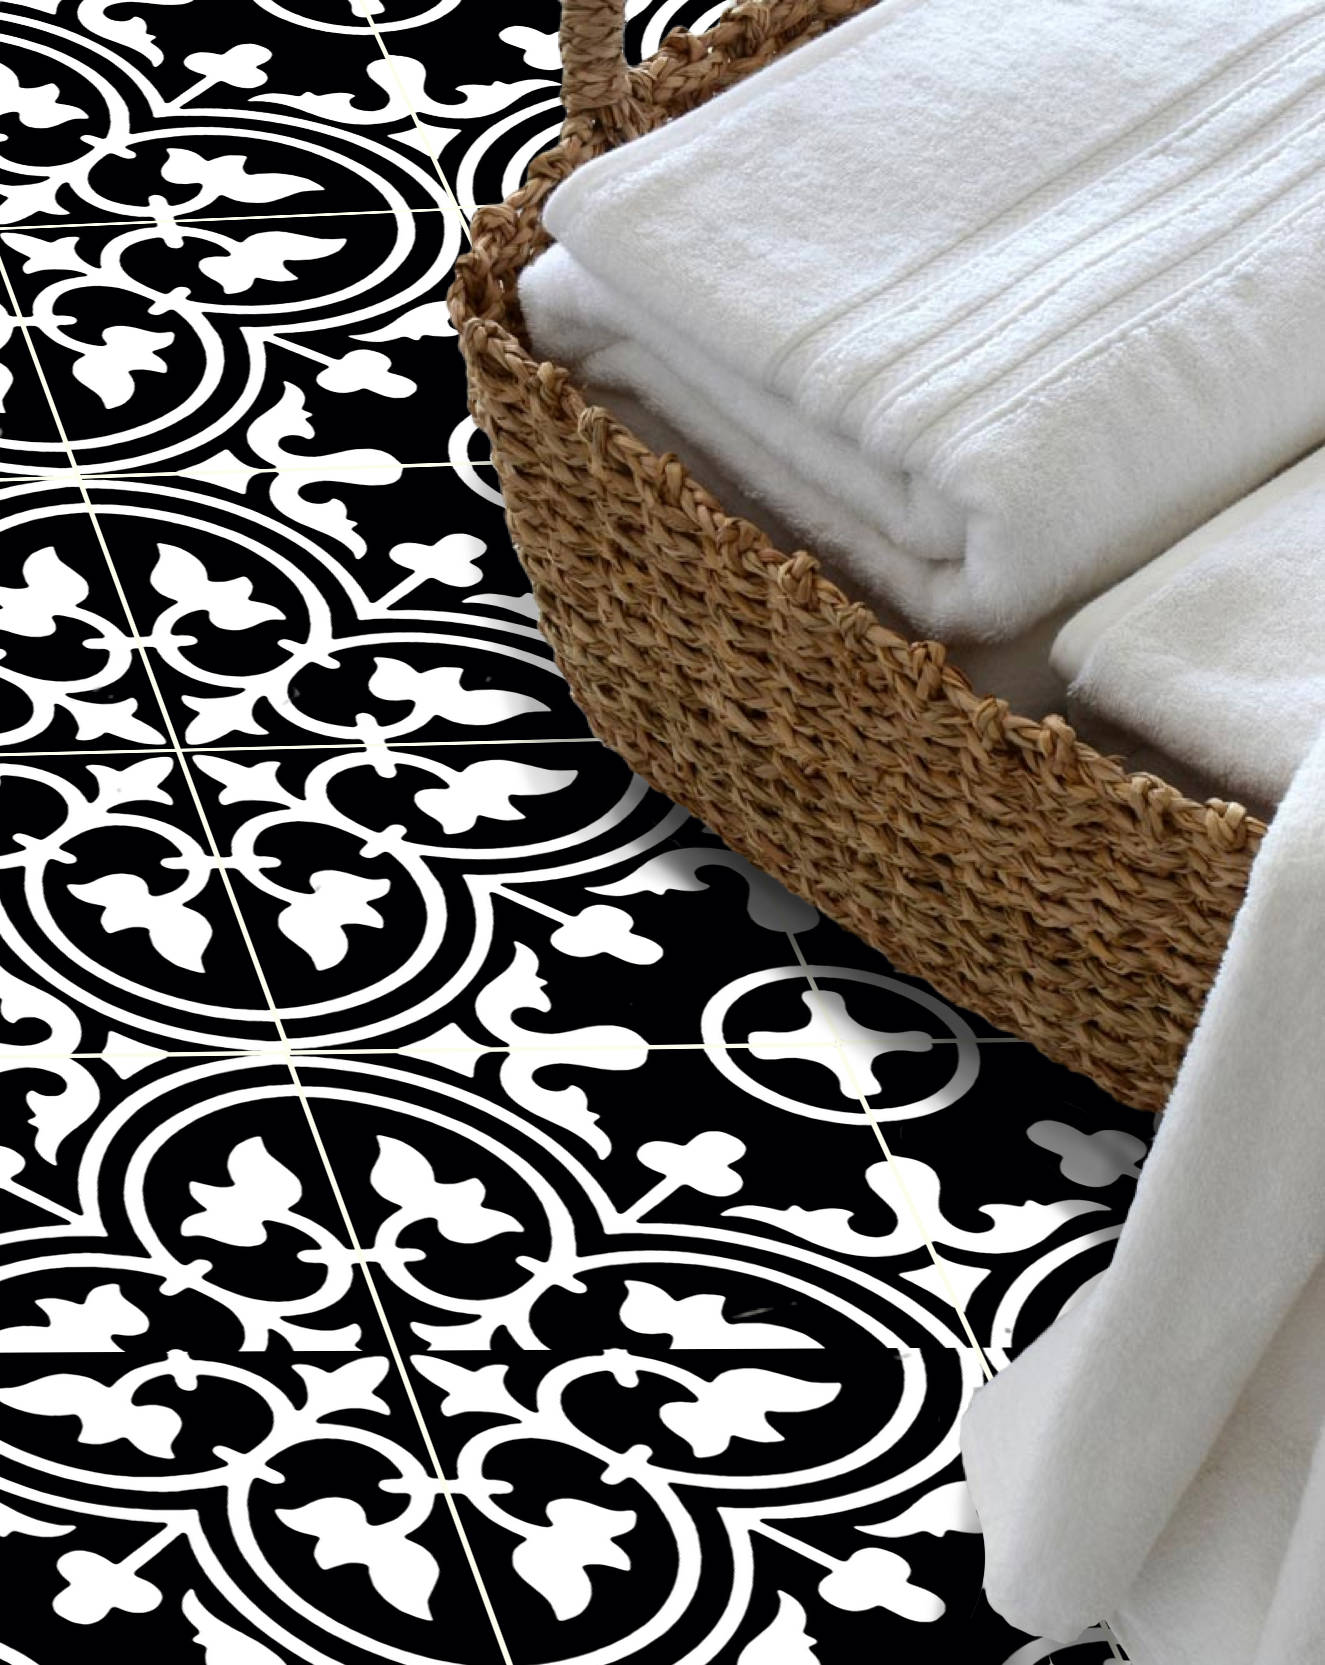 Floor tile stickers vinyl decal waterproof removable for zoom dailygadgetfo Image collections